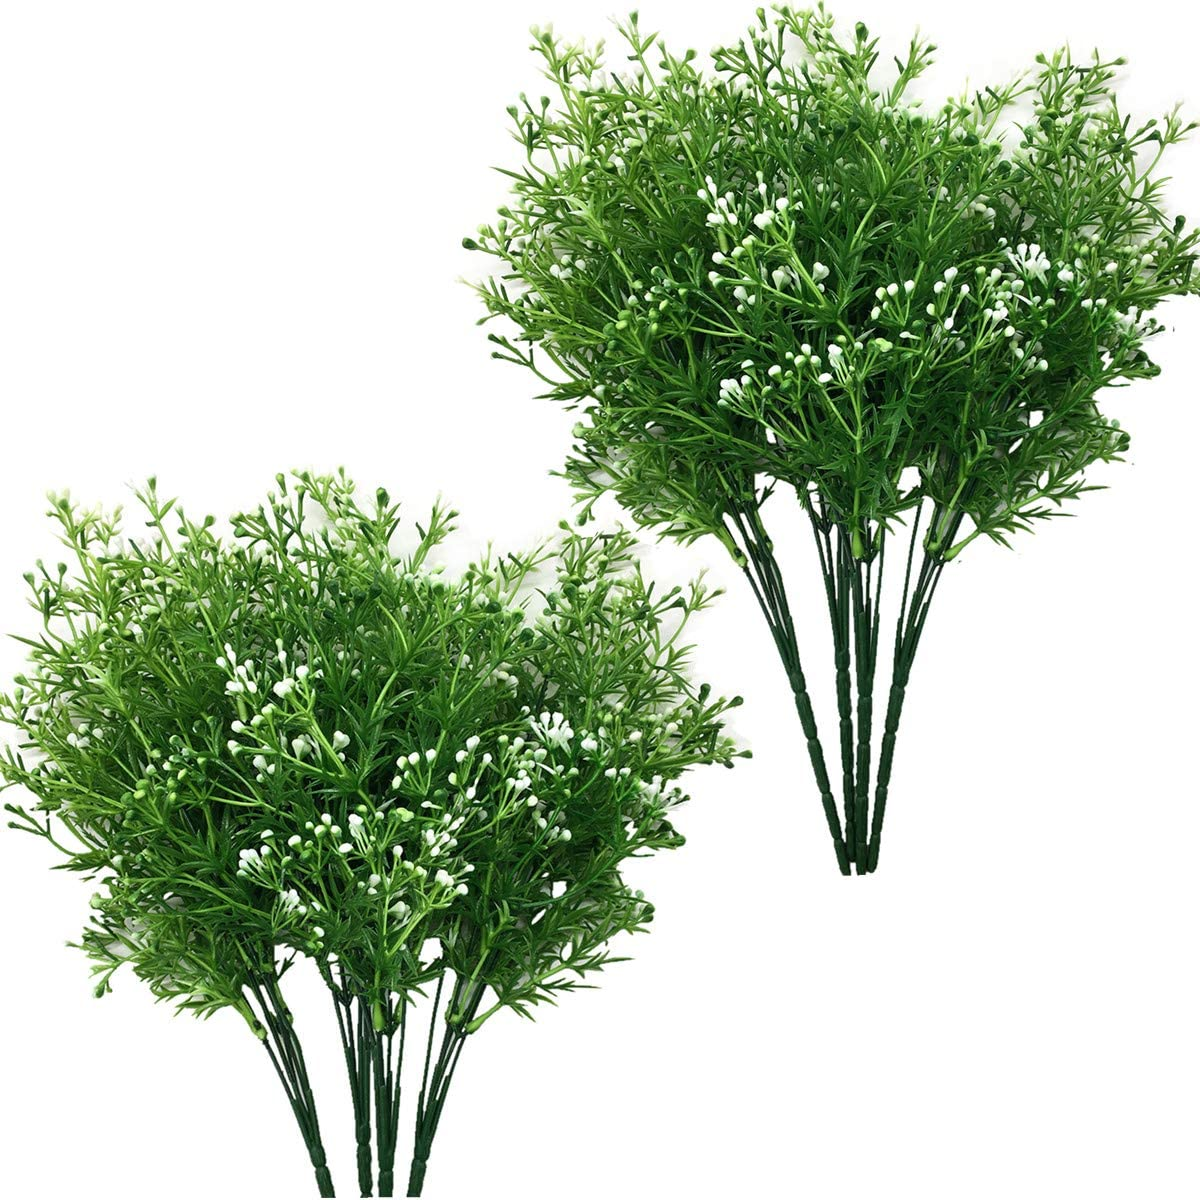 CATTREE Artificial Plants New Shipping Free Shipping Plastic Shrubs Fak Pearl Flowers Choice Faux